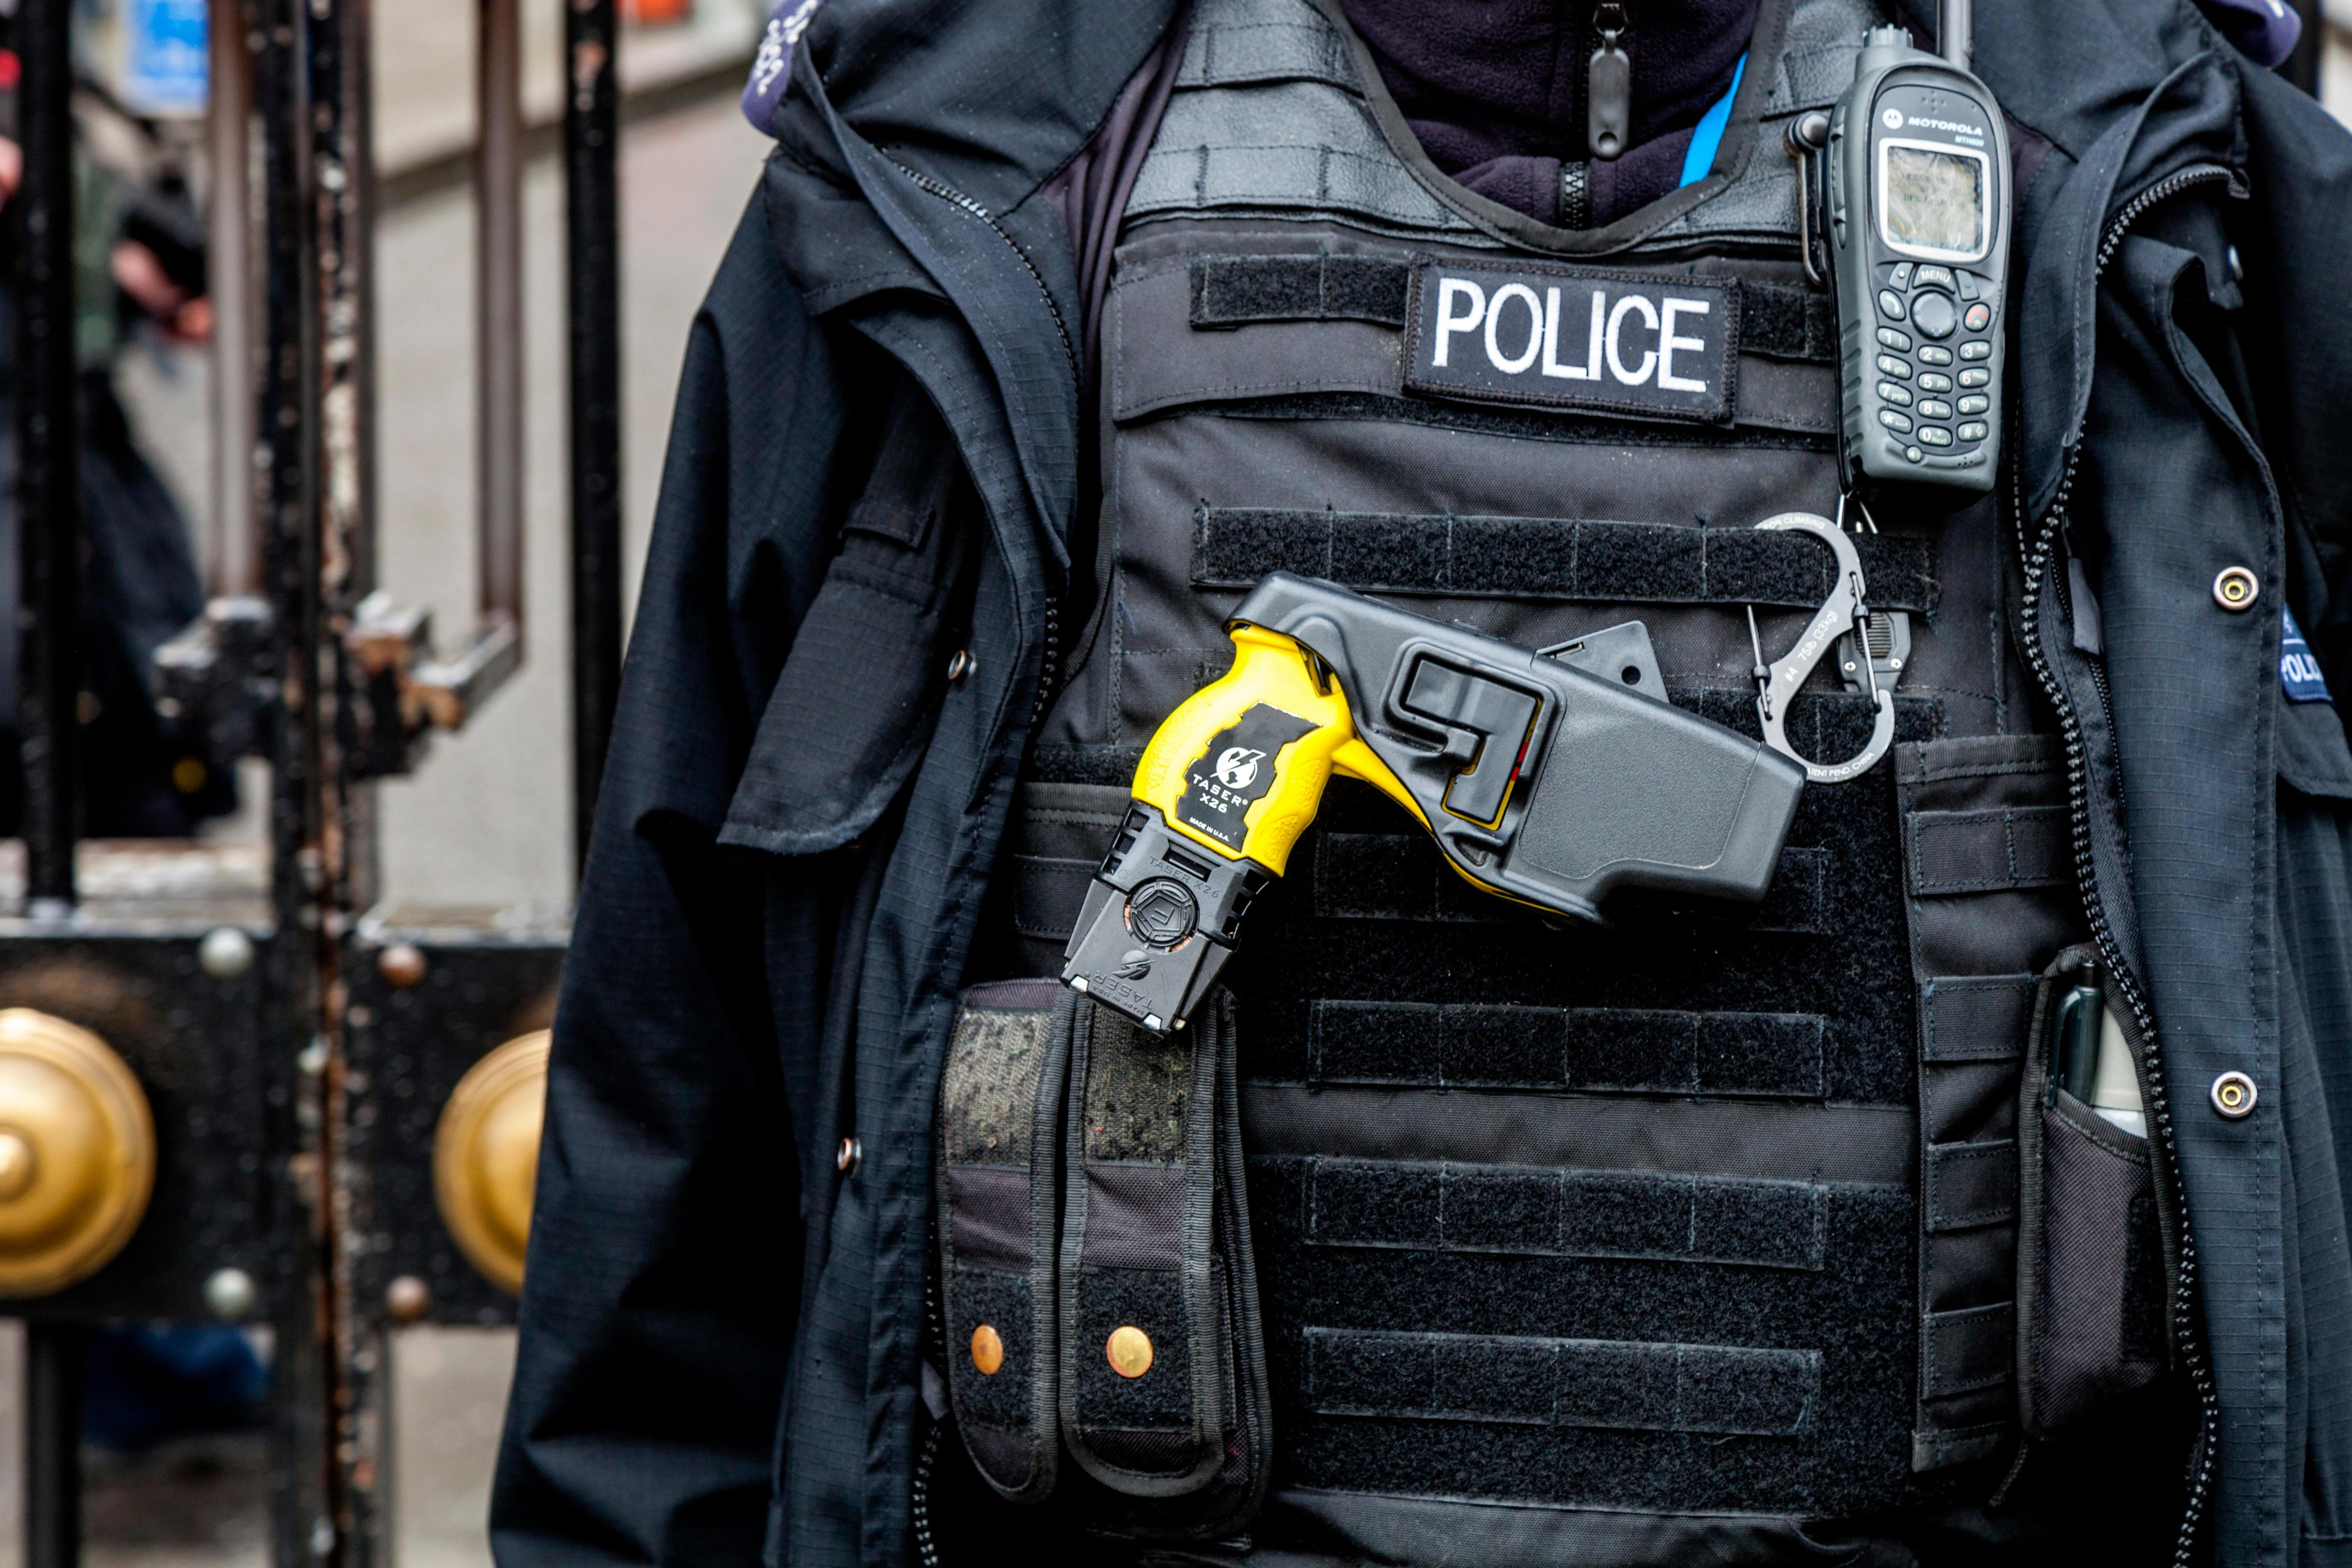 Police chiefs call for new recruits to carry TASERS in bid to tackle rising violent crime and terror threat